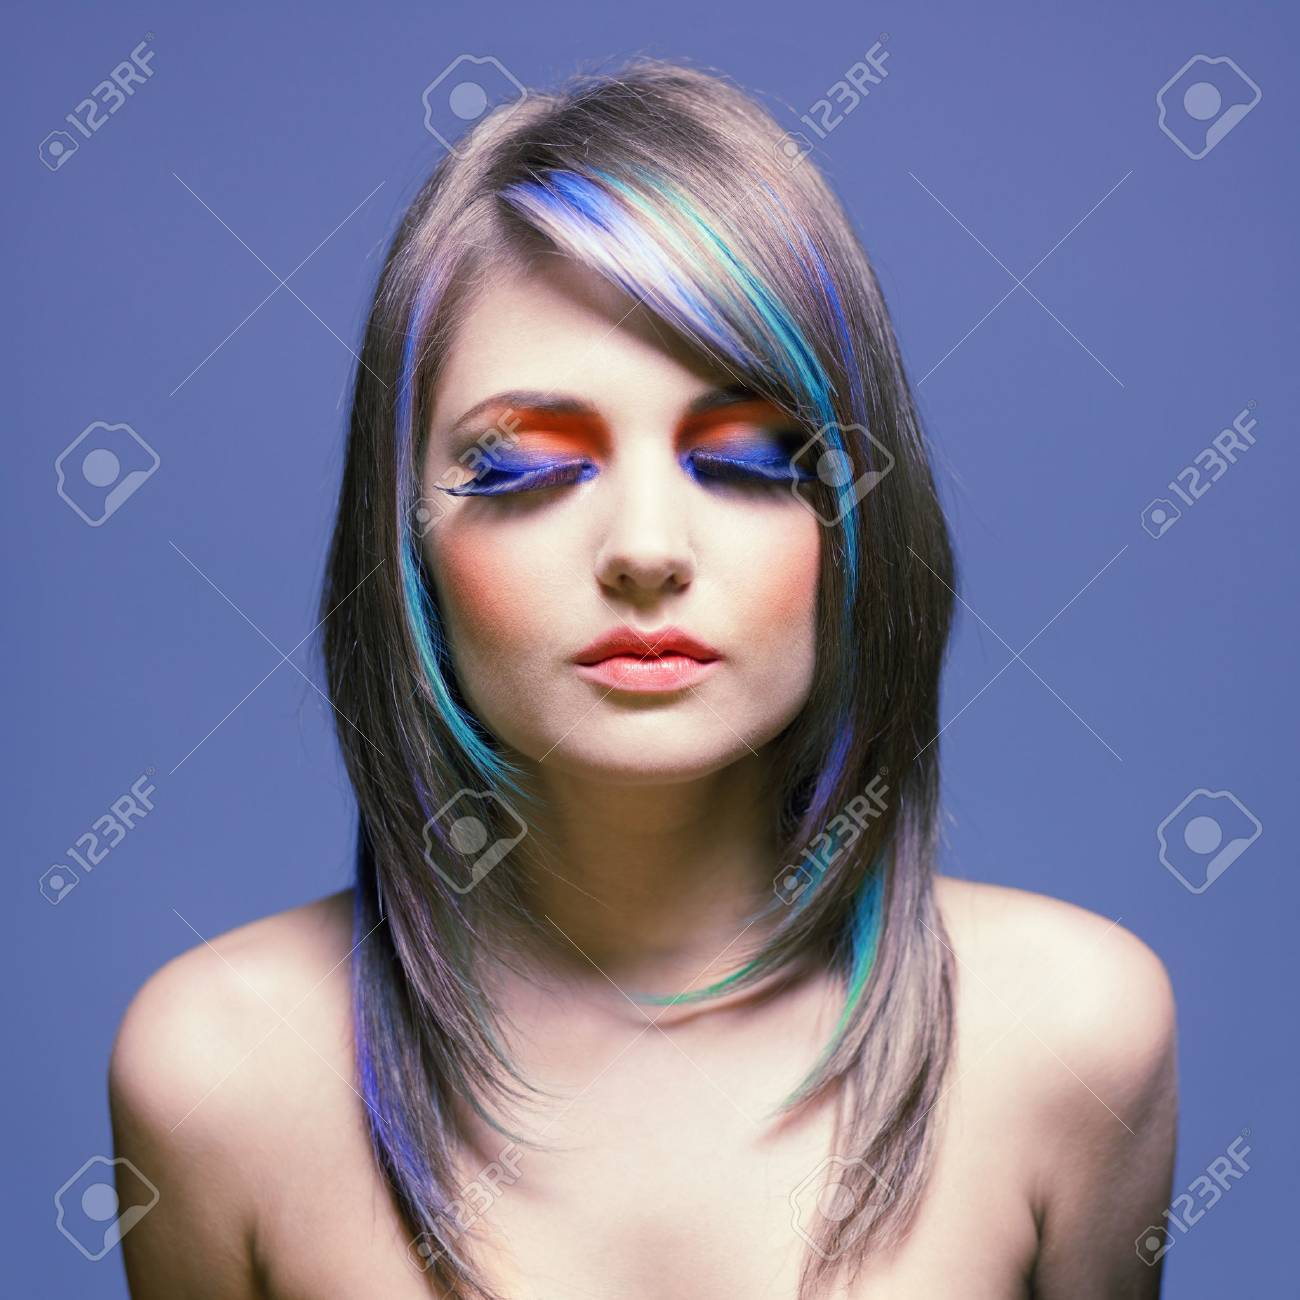 Photo of young lady with bright makeup on bright background Stock Photo - 13563939